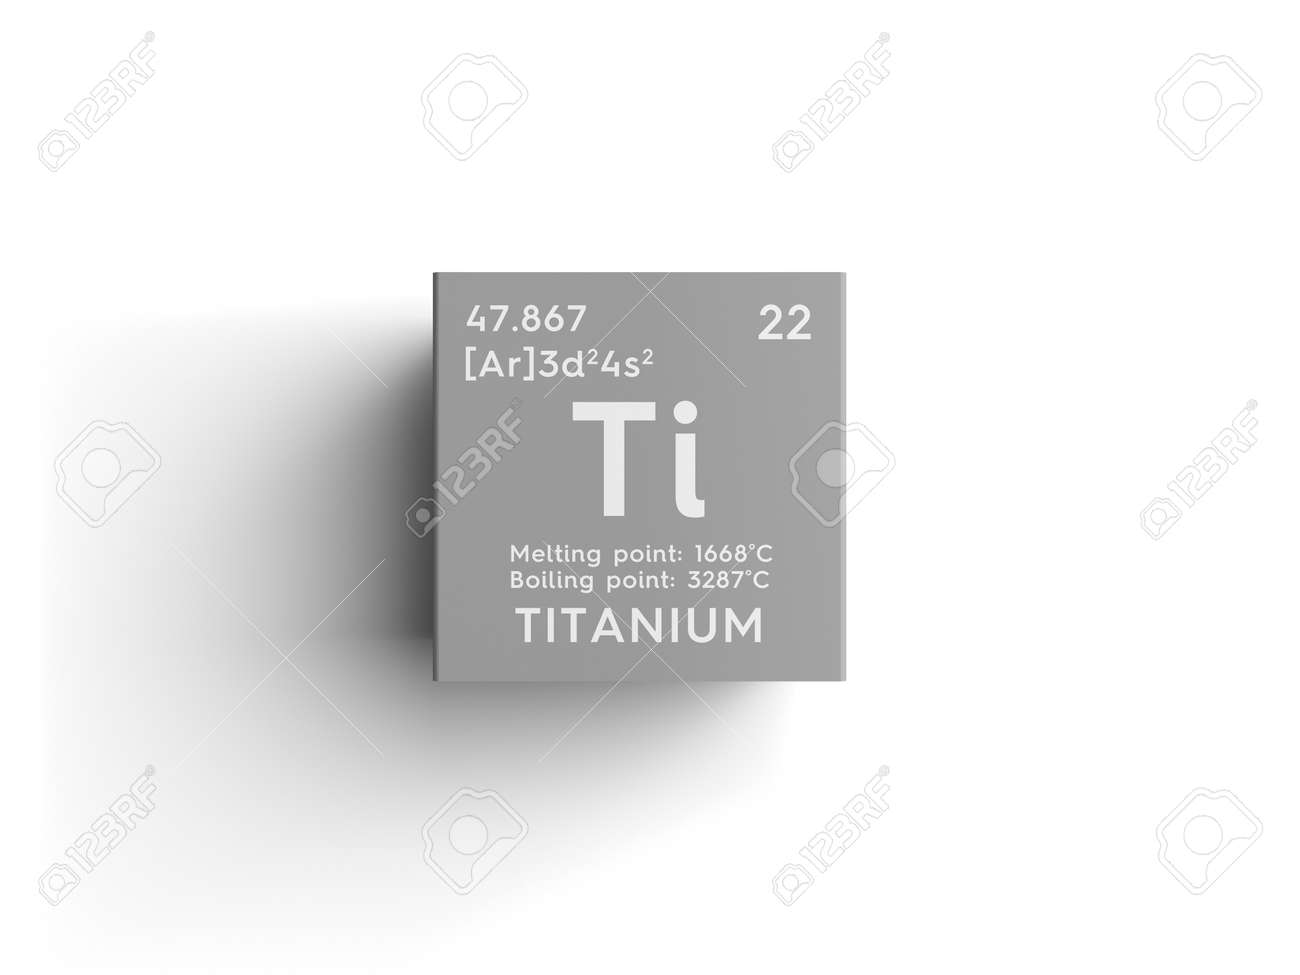 Titanium. Transition Metals. Chemical Element Of Mendeleevu0027s Periodic Table.  Titanium In Square Cube